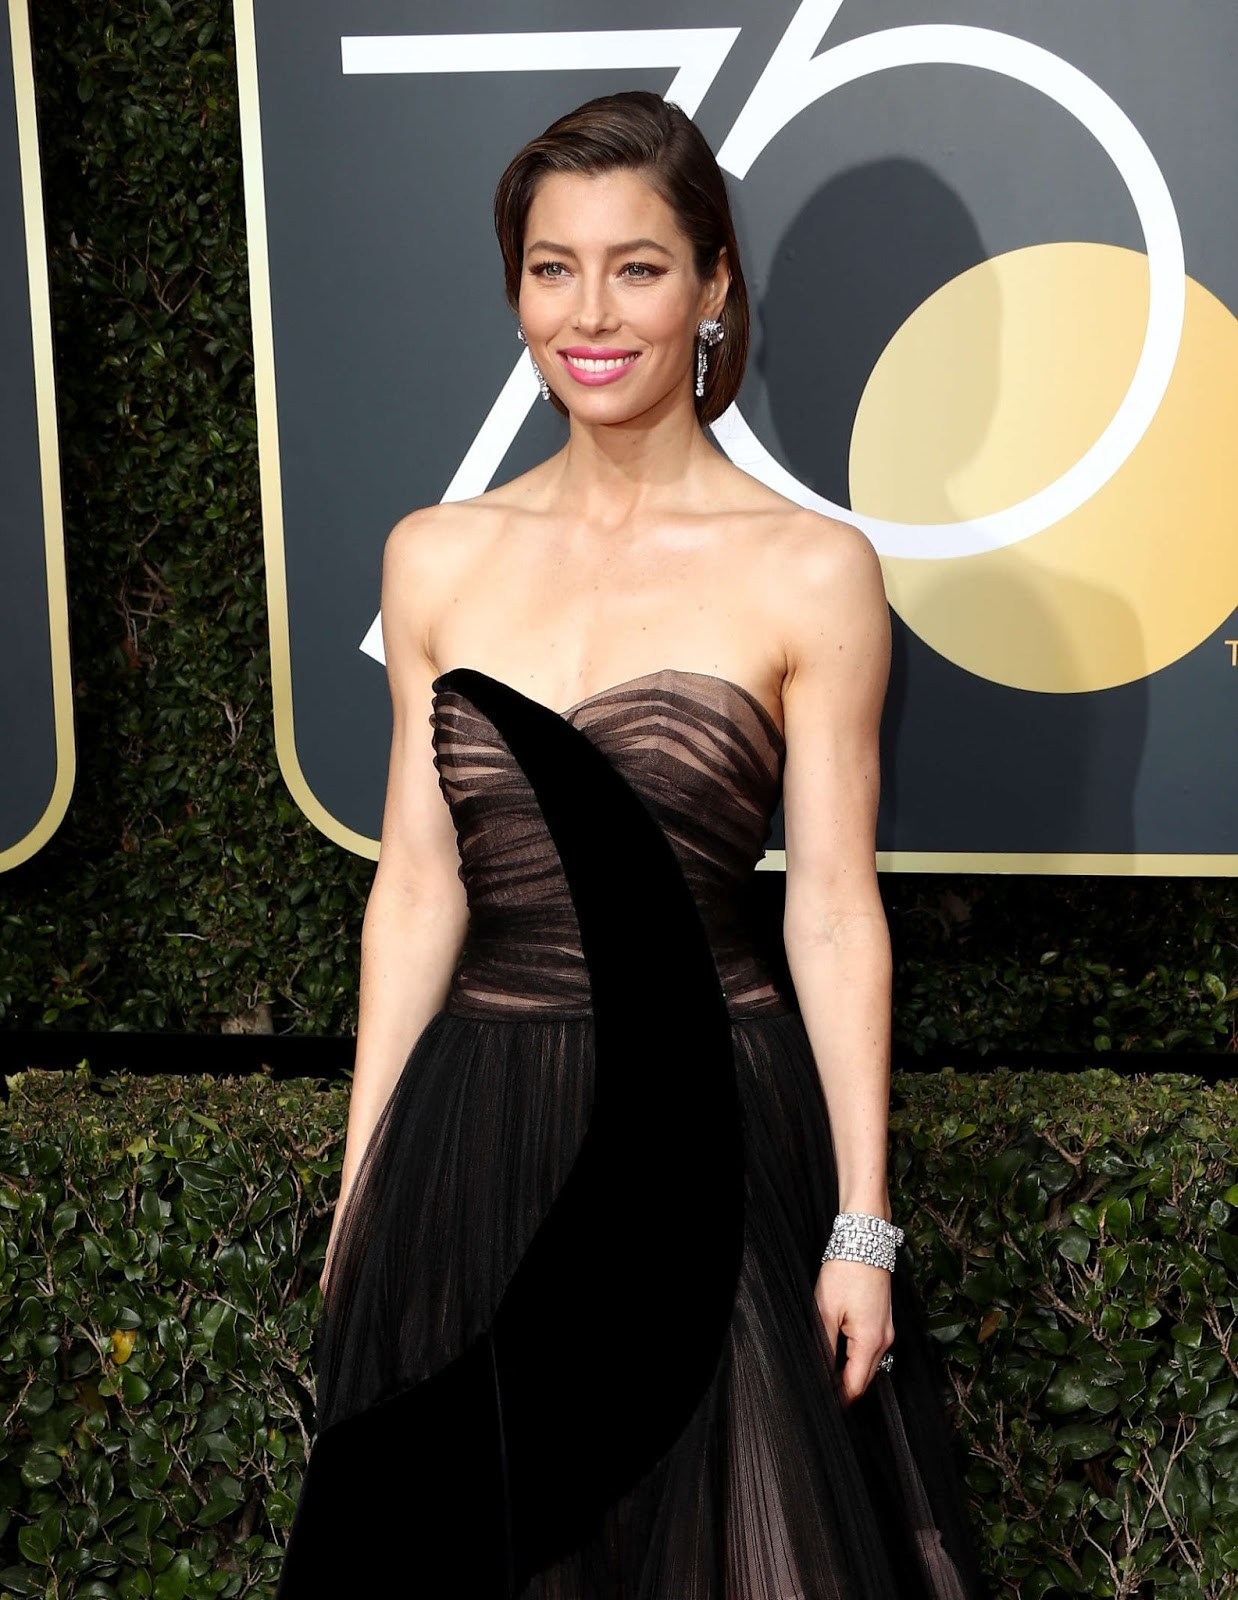 Jessica Biel on Tthe Red Carpet at Golden Globe Awards